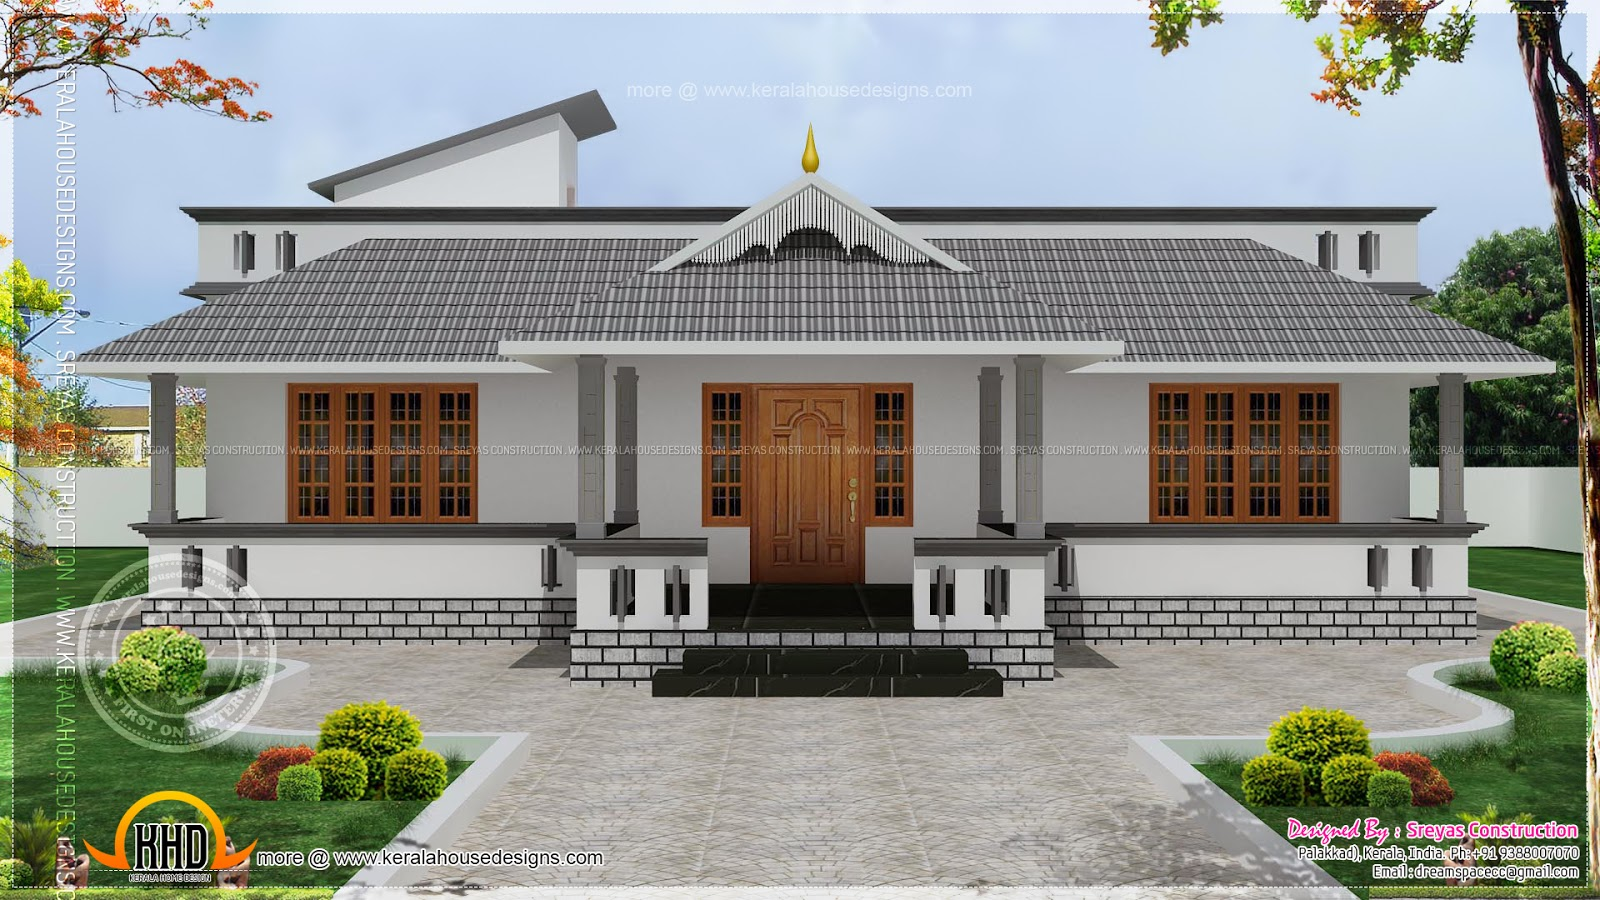 One Story Cottage Plans January 2014 Kerala Home Design And Floor Plans